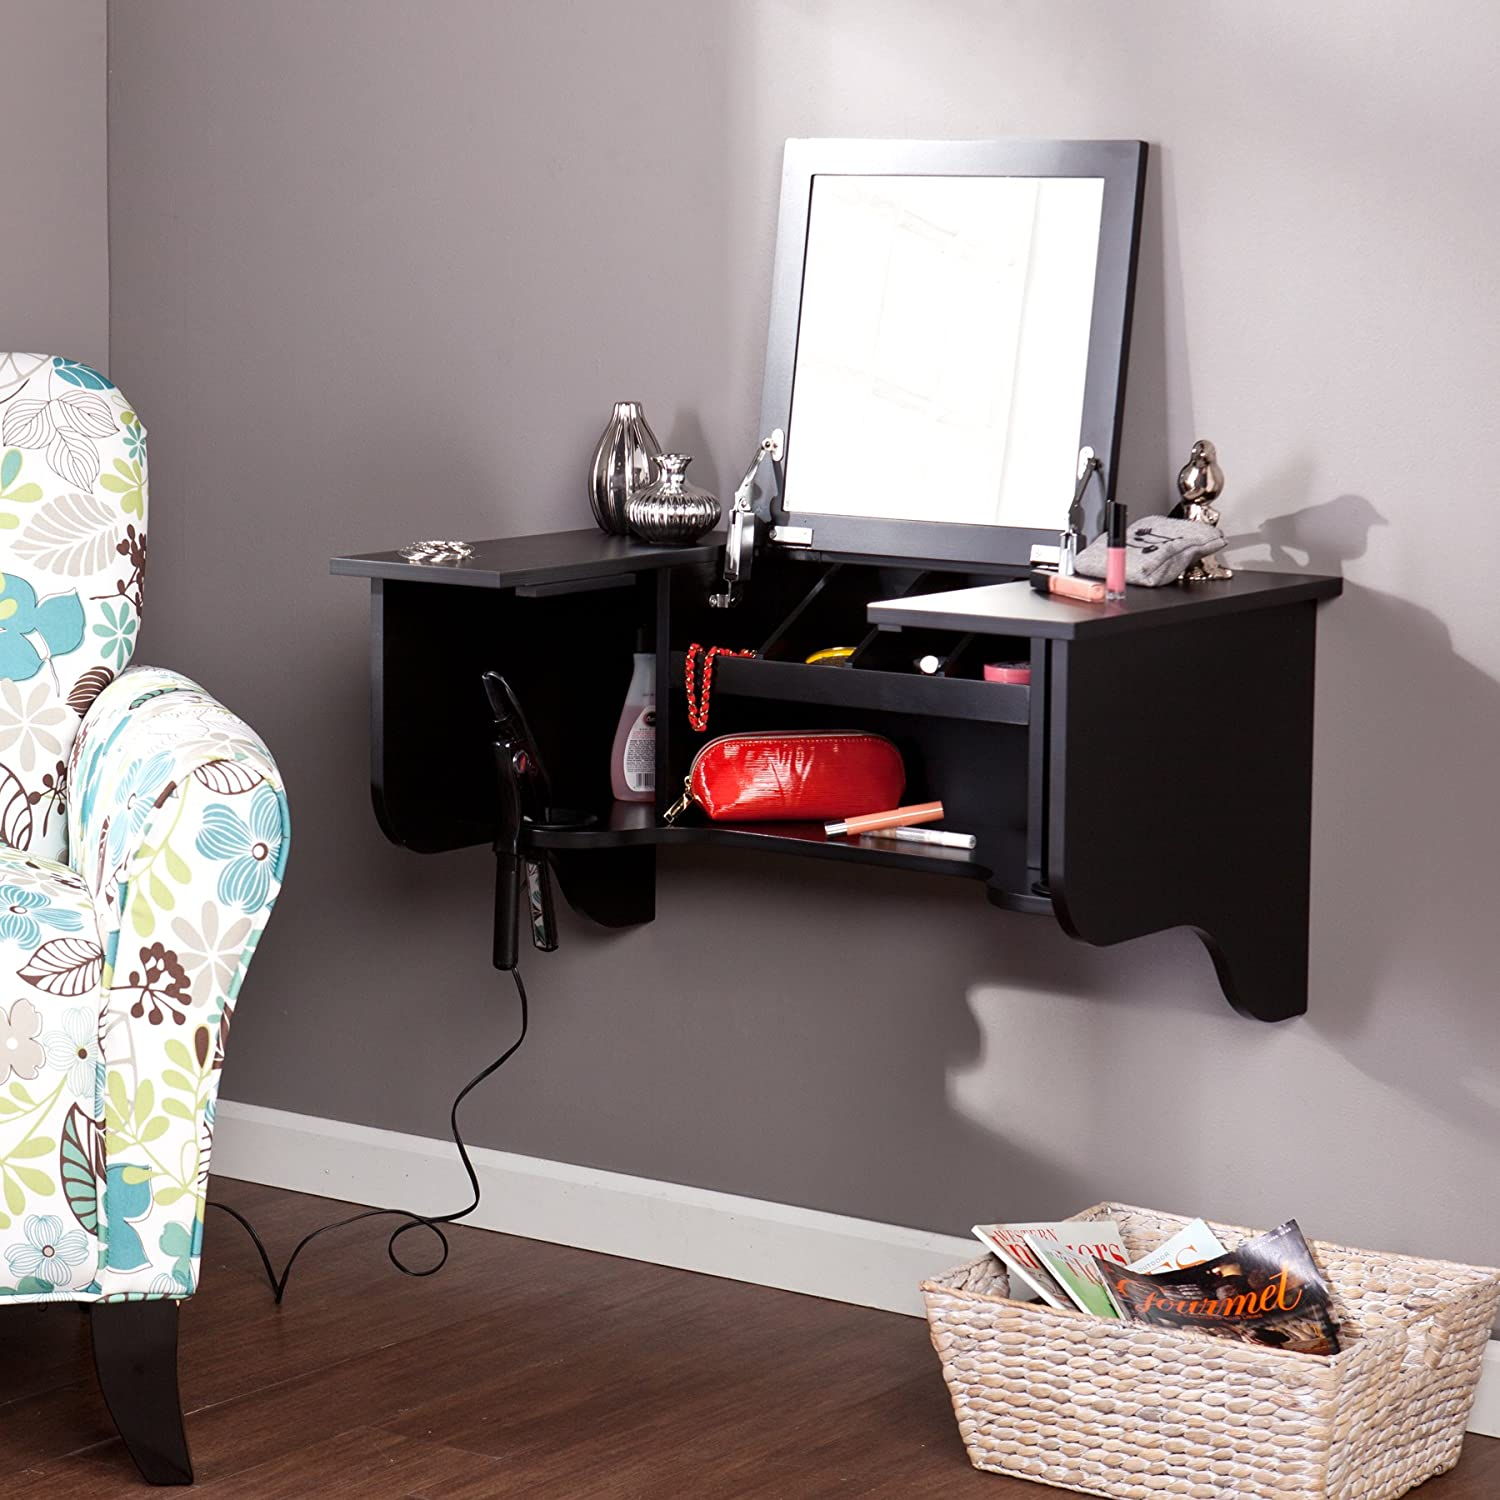 Exceptionnel Amazon.com: Southern Enterprises Wall Mount Shelf With Vanity Mirror, Black  Finish: Kitchen U0026 Dining